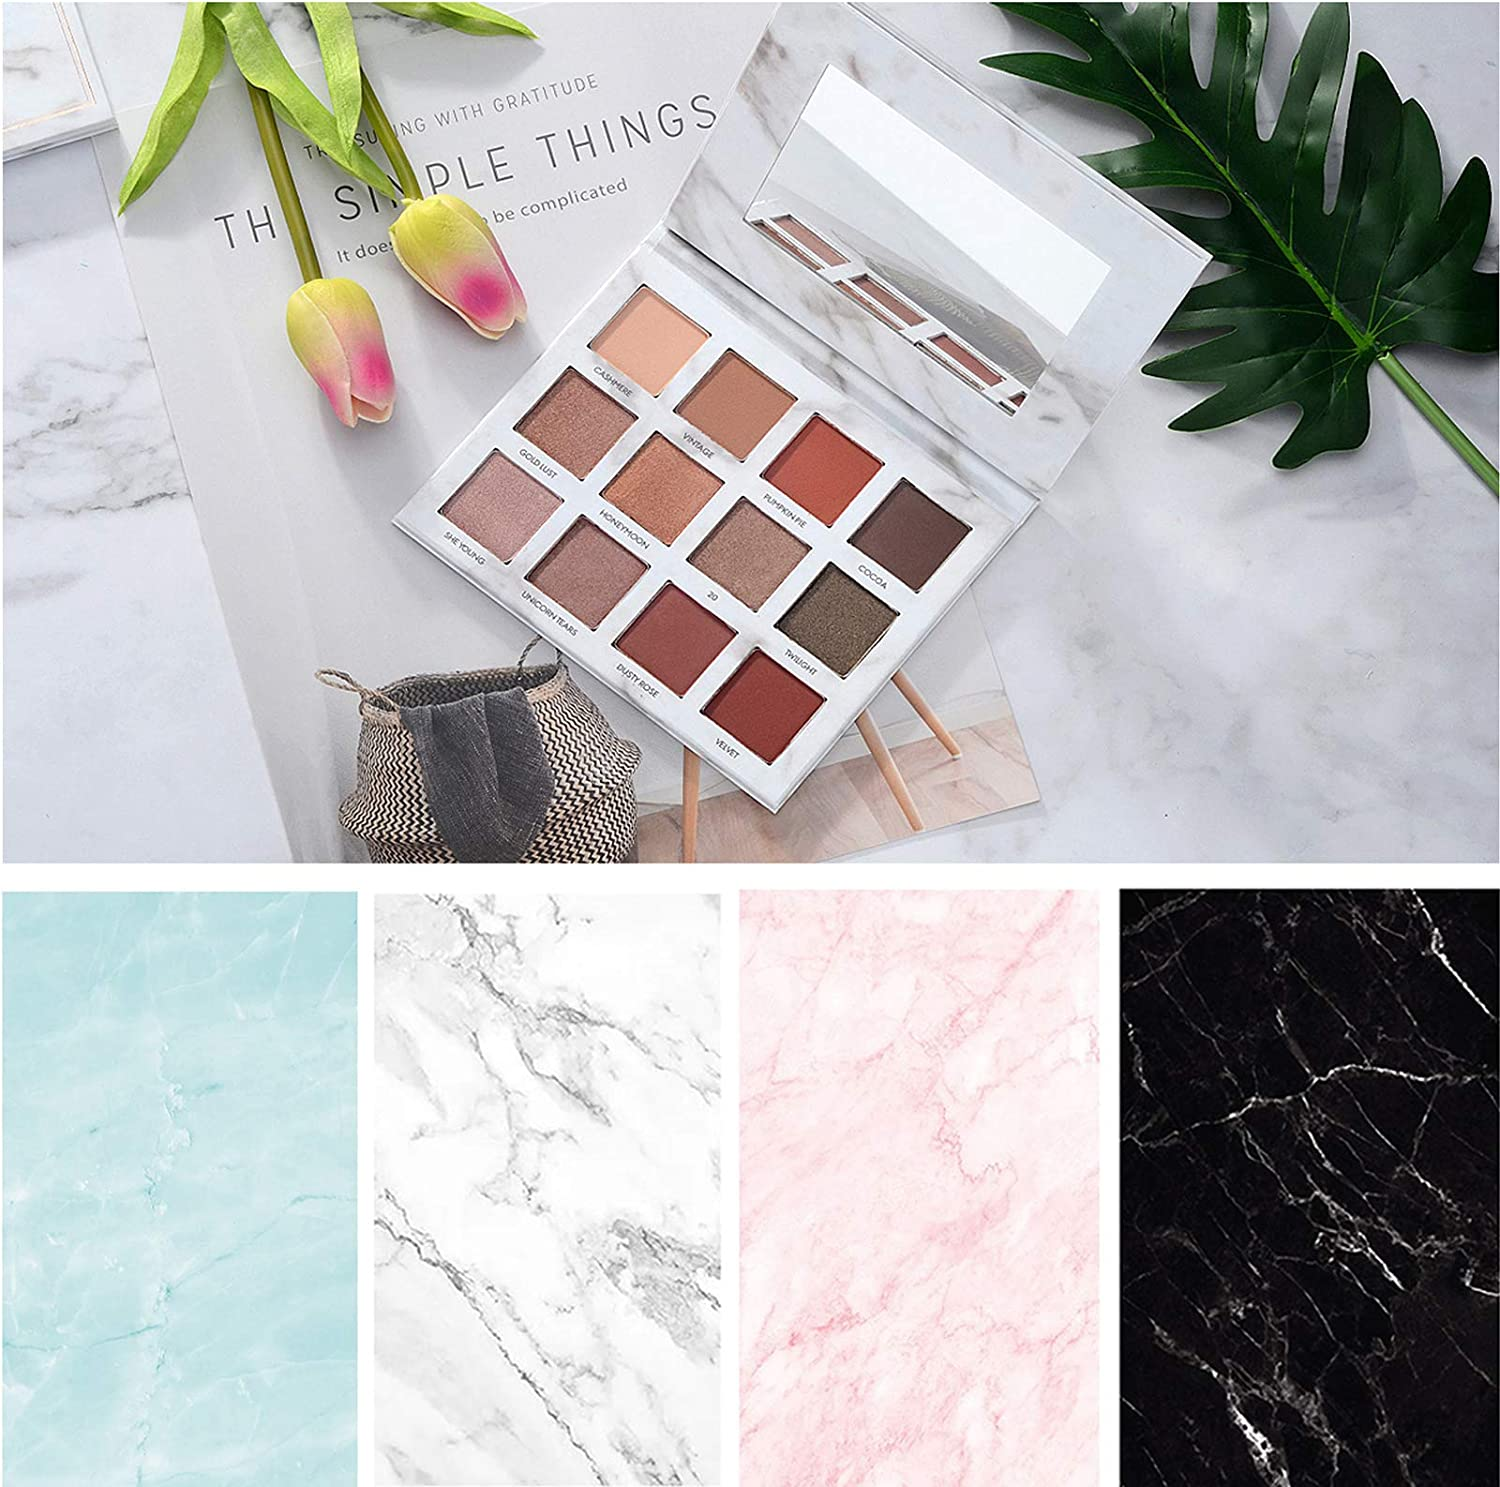 Bcolor Marble Backdrop Photography Paper 4 Pack Kit 22x35Inch/ 56x88cm Flat Lay Photo Background Rolls Double Sided for Food Product Jewelry Tabletop Blog Pictures Props, 8 Pattern